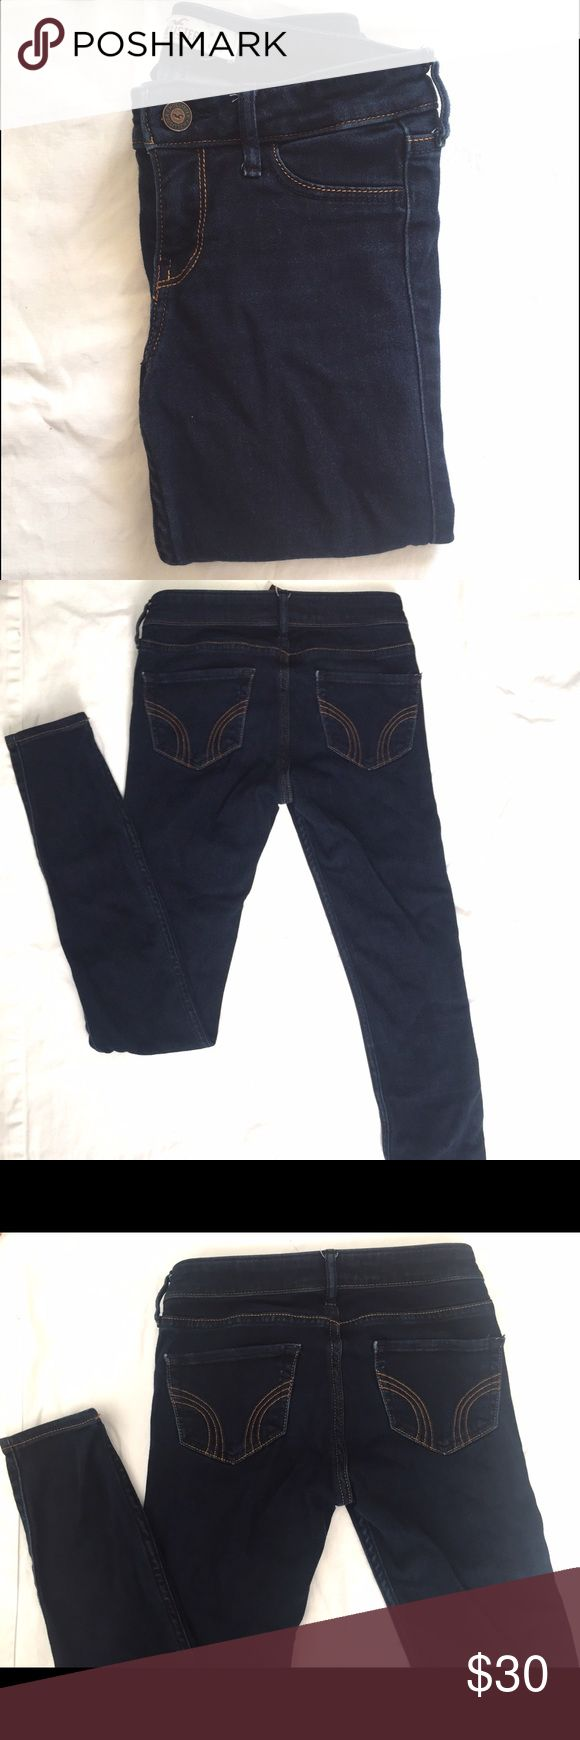 Hollister jeans Hollister Jean leggings in dark blue. Comfy and stretchy skinny jeans in low rise. Worn two times. Hollister Jeans Skinny